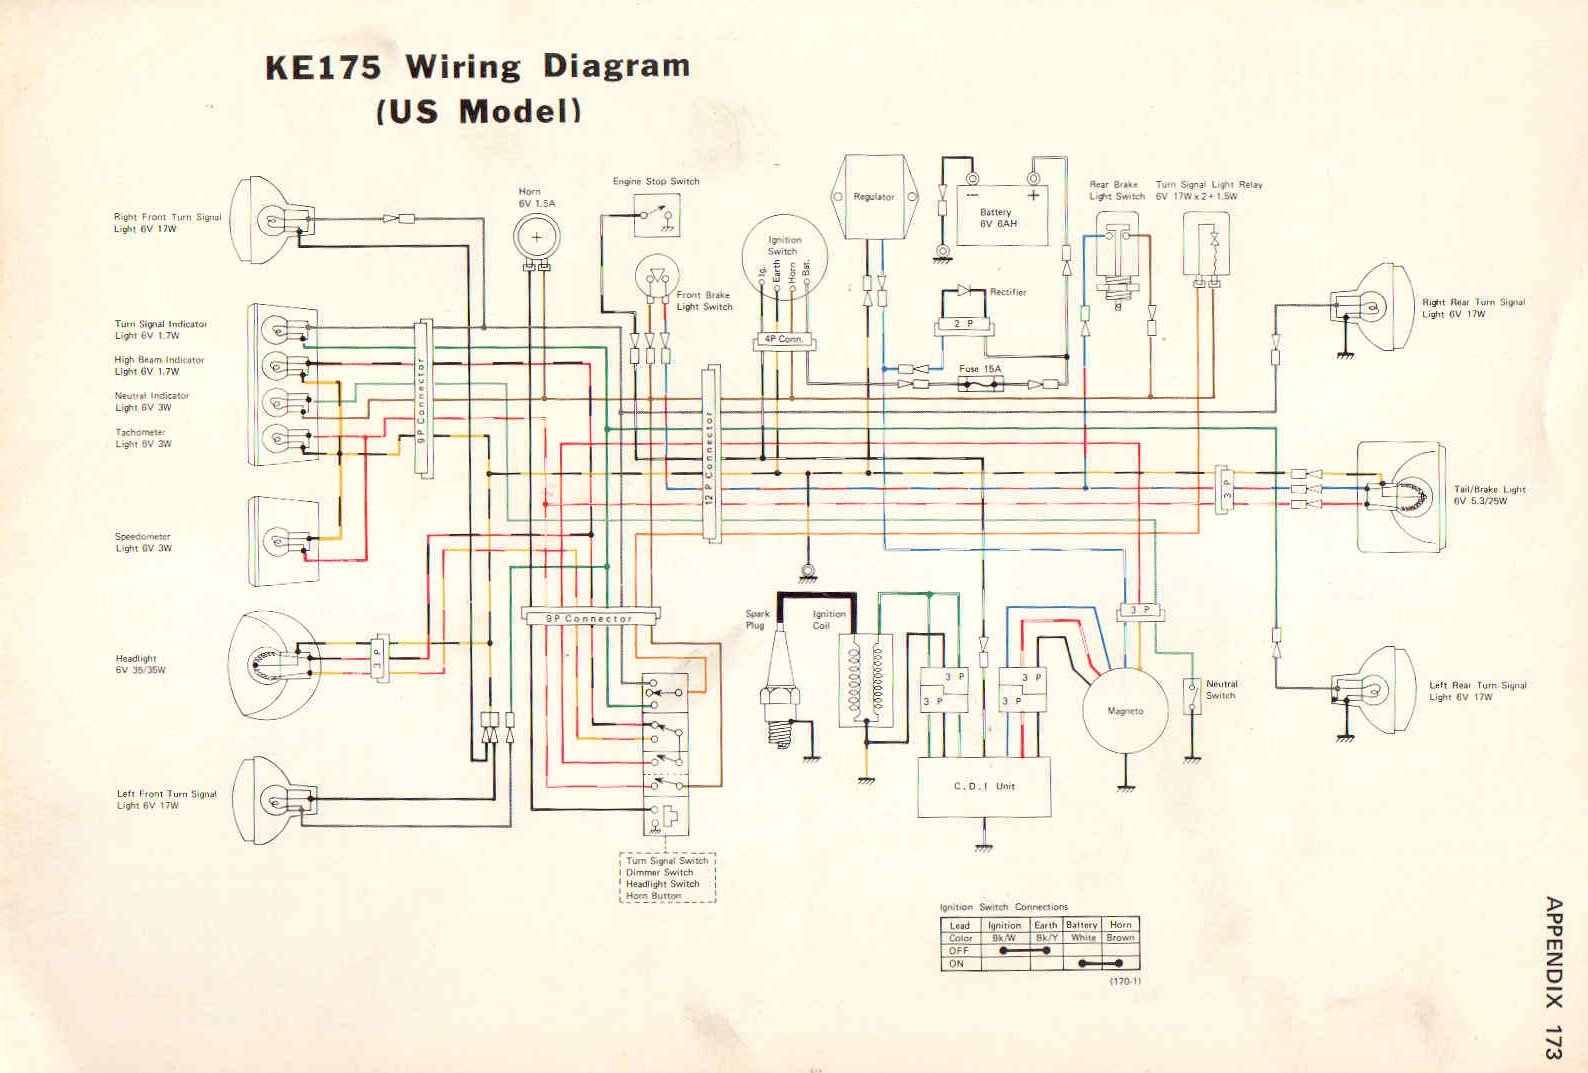 wiring diagram 1978 mgb the wiring diagram readingrat net Austin Healey Sprite Wiring Diagram 1978 ke 250 wiring diagram 1978 free wiring diagrams, wiring diagram austin healey sprite wiring diagram